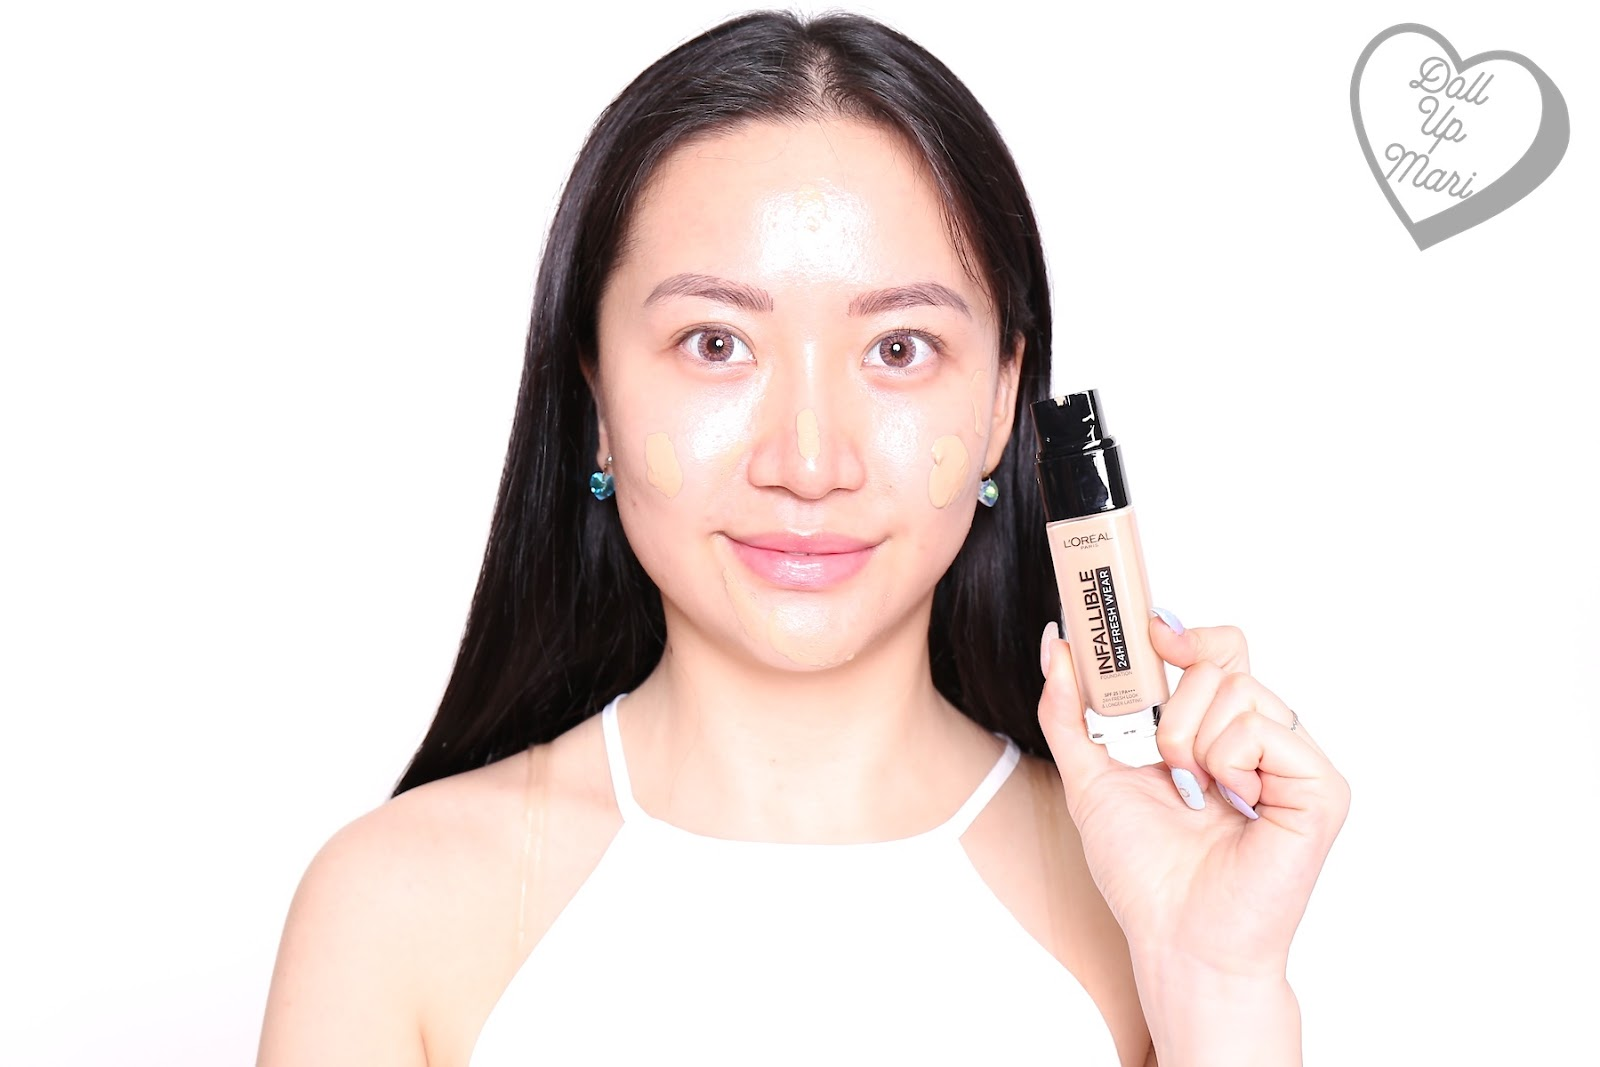 Applying L'Oréal Paris Infallible 24HR Fresh Wear Liquid Foundation SPF25PA+++ in shade Golden Beige